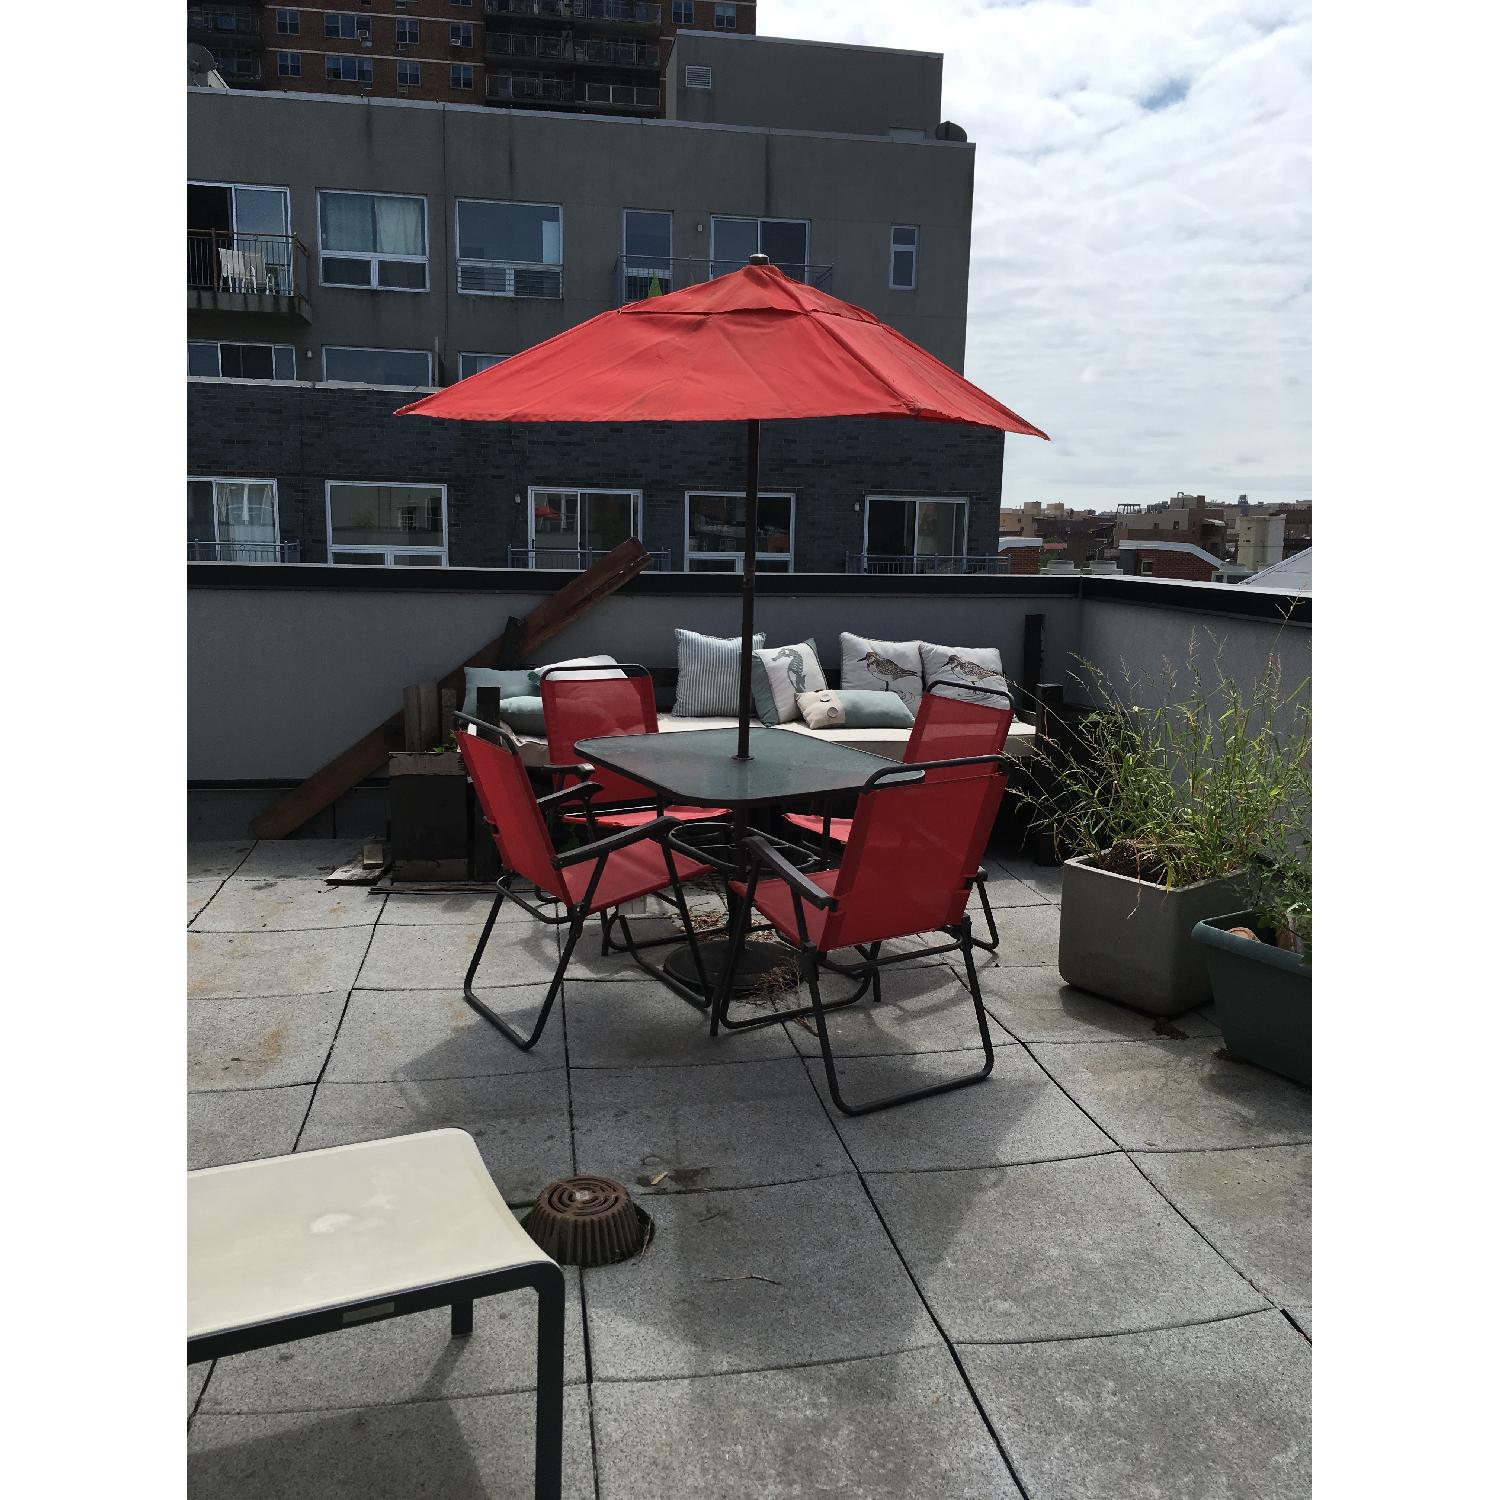 Outdoor Dining Table w/ 4 Chairs + Umbrella w/ Stand